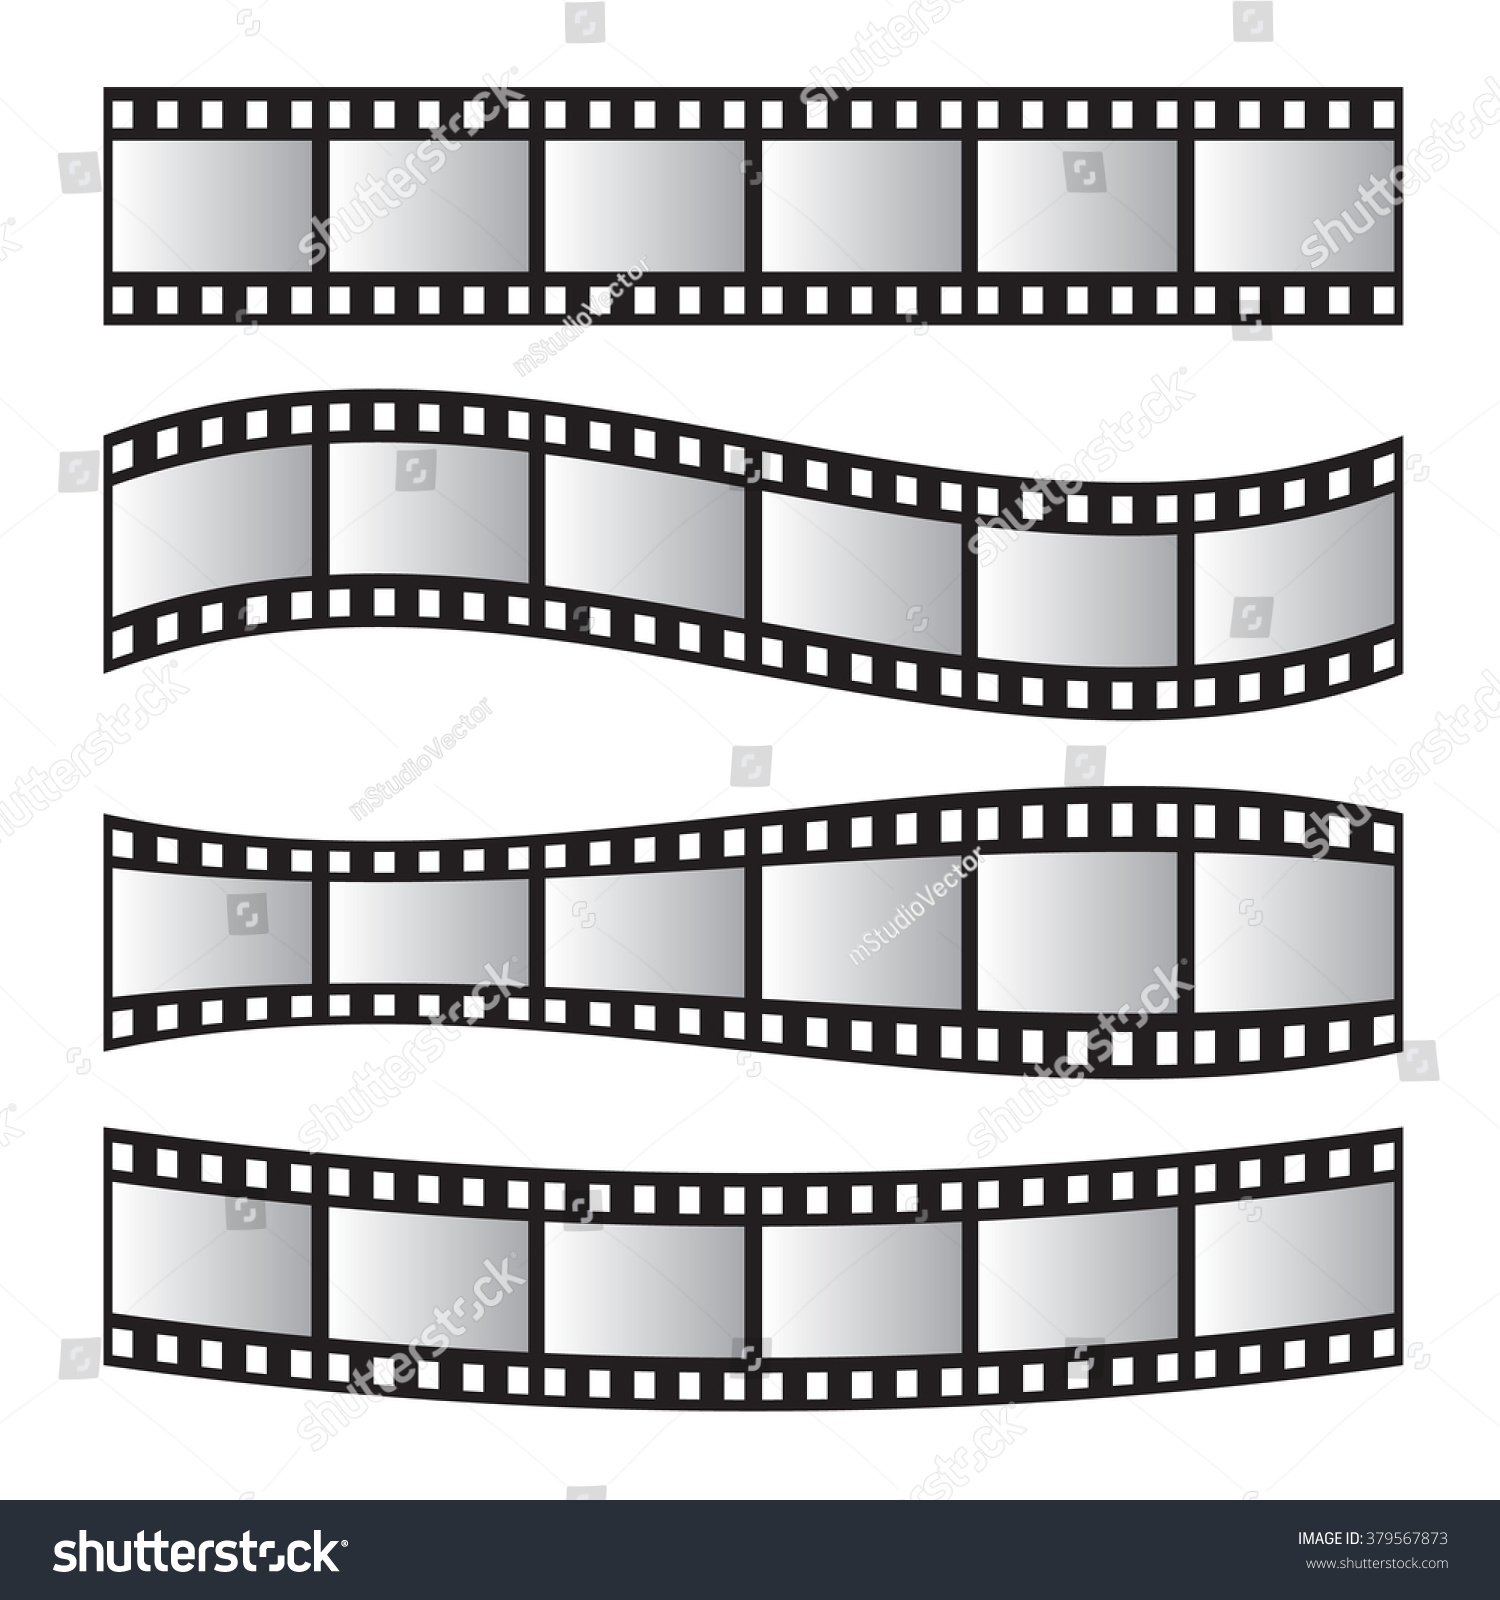 Film roll vector film 35mm slide stock vector 379567873 shutterstock film roll vector film 35mm slide film frame set negative and strip jeuxipadfo Image collections